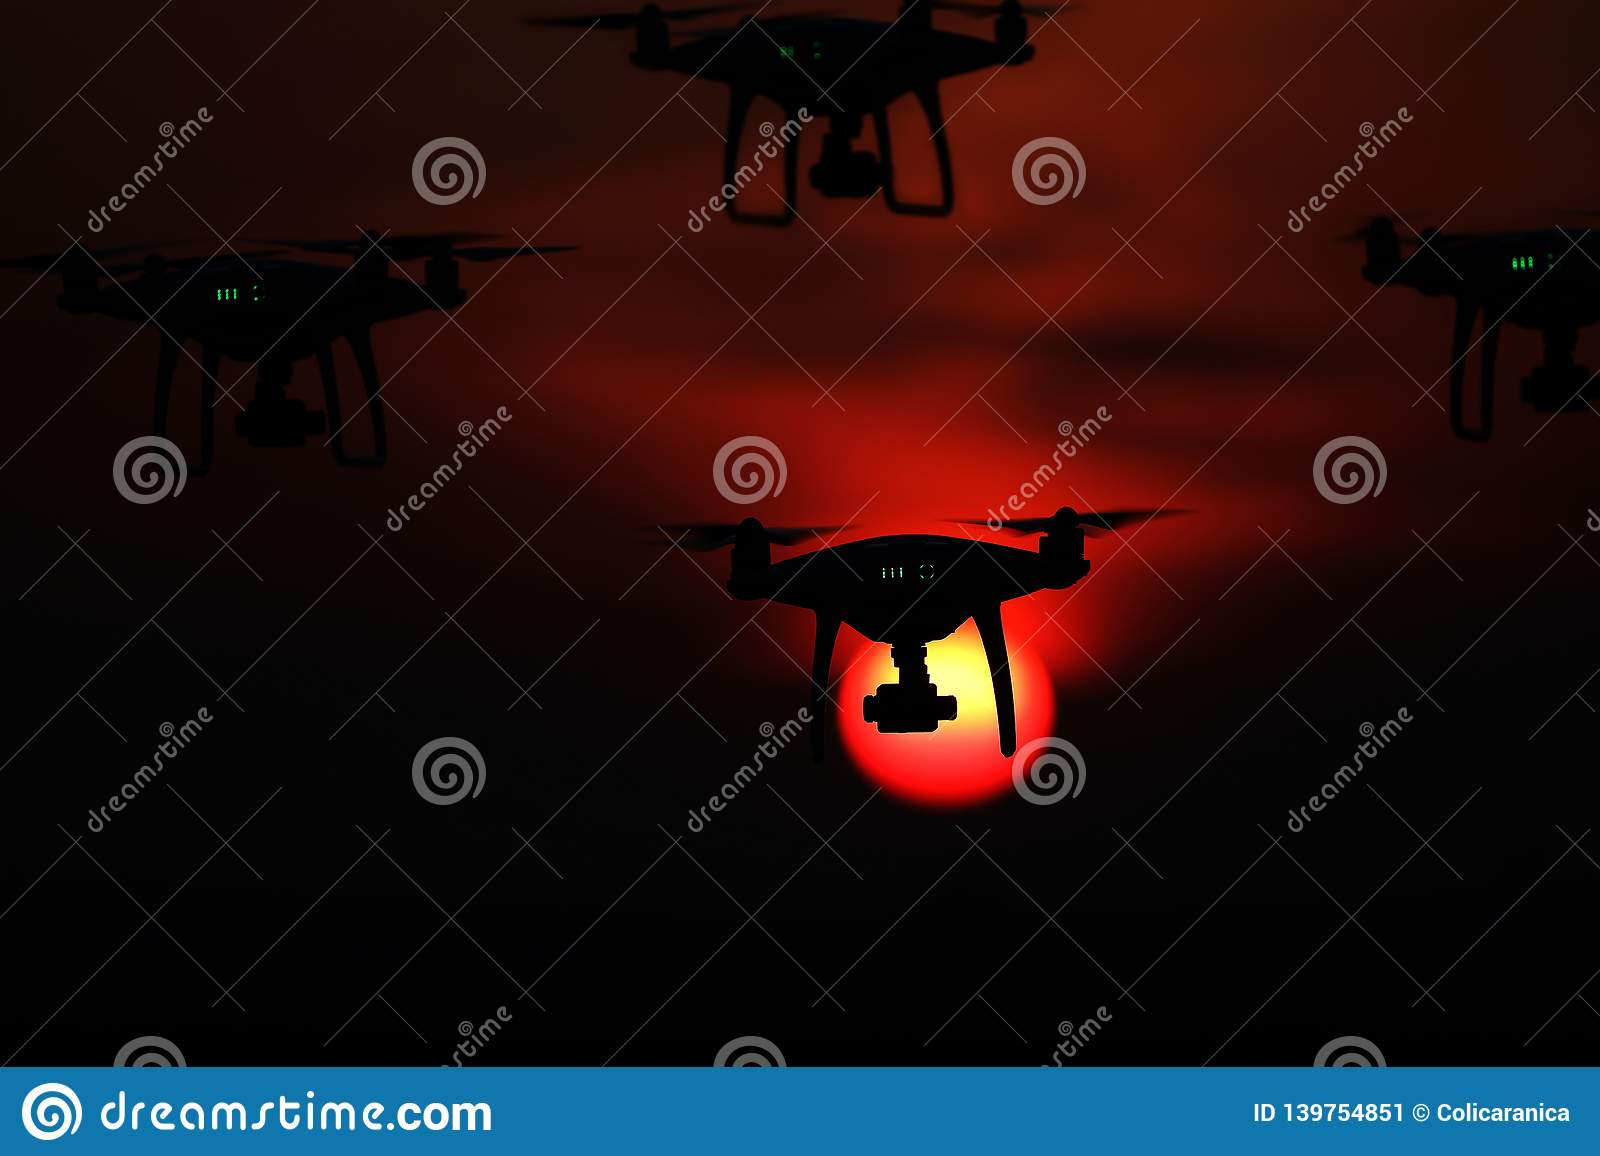 Silhouette of drones in the sky, red sunset